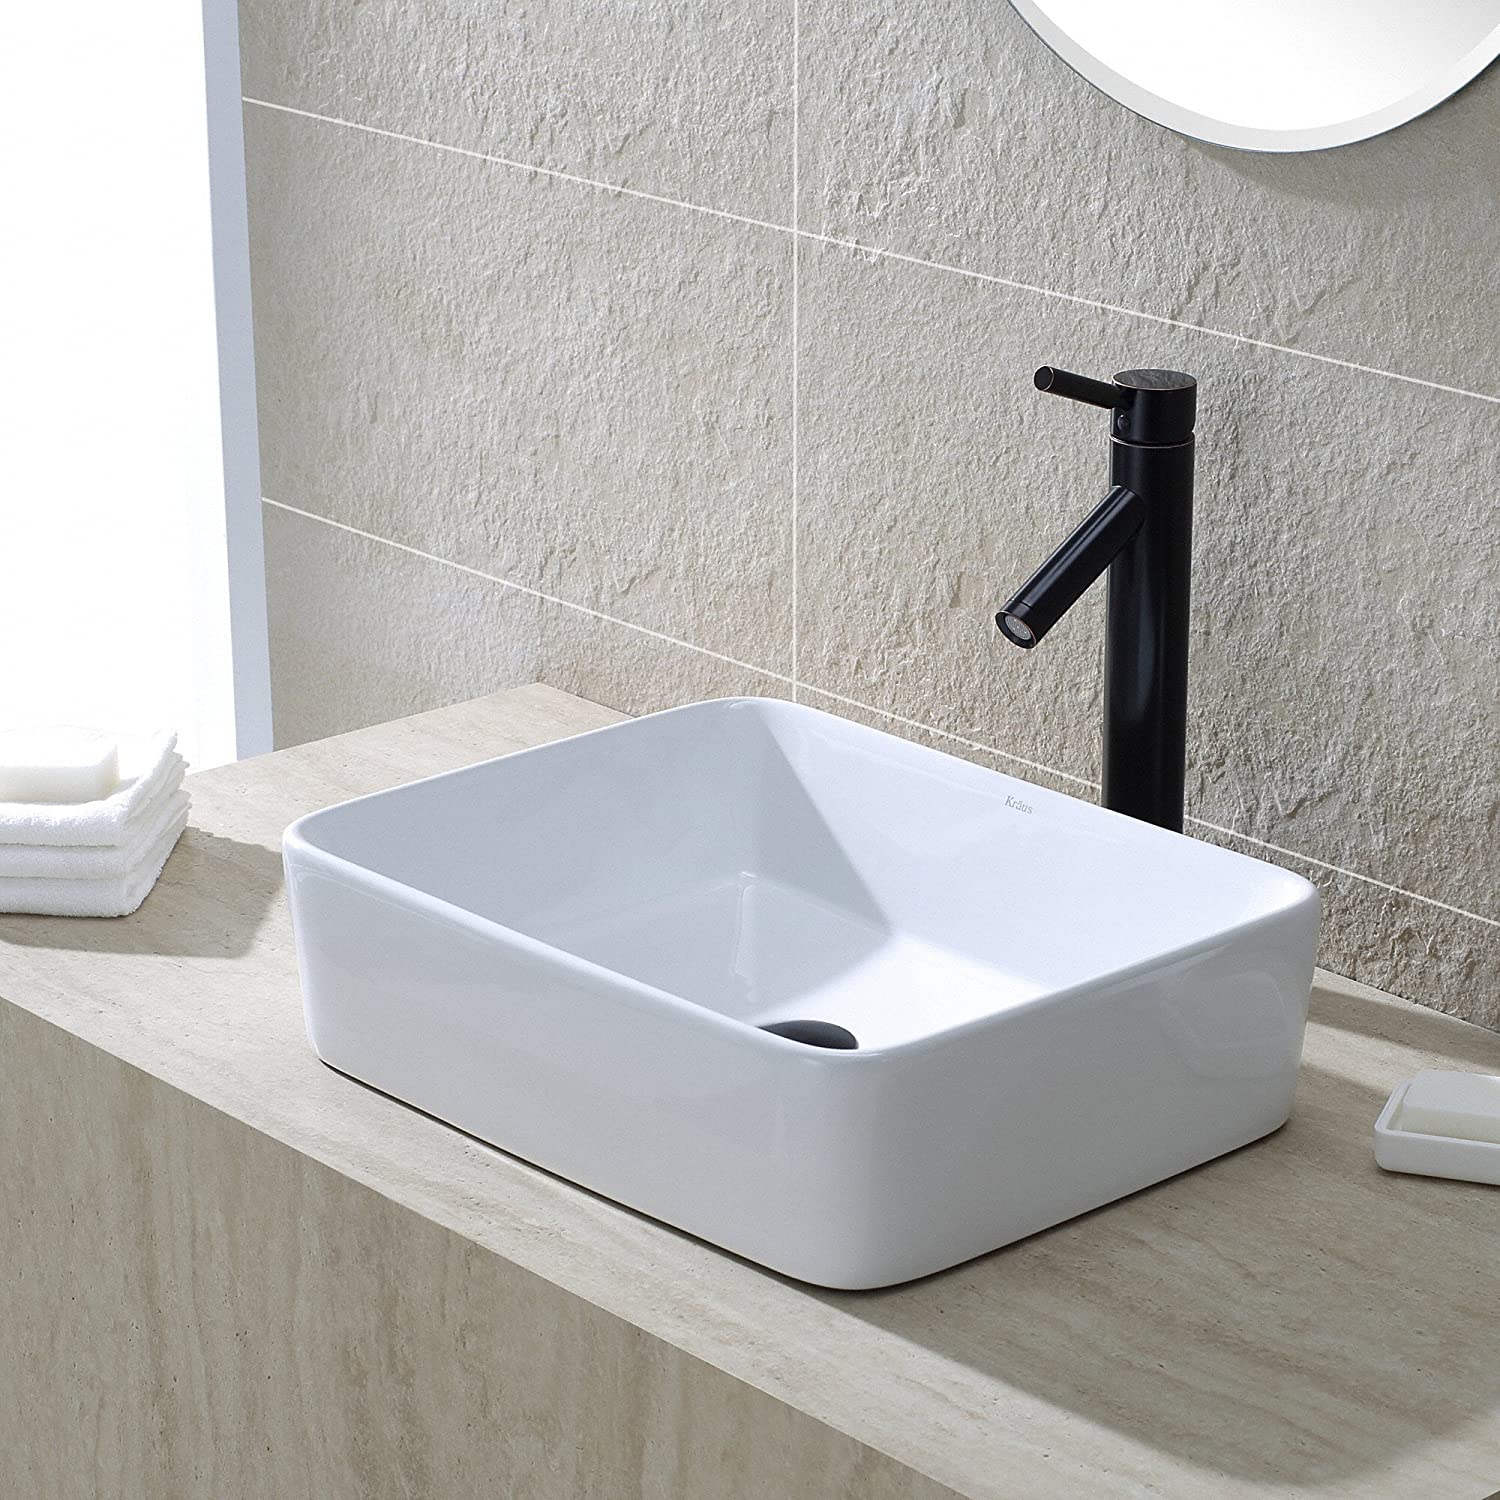 Bathroom sink rectangular - Kraus Kcv 121 White Rectangular Ceramic Bathroom Sink Vessel Sinks Amazon Com